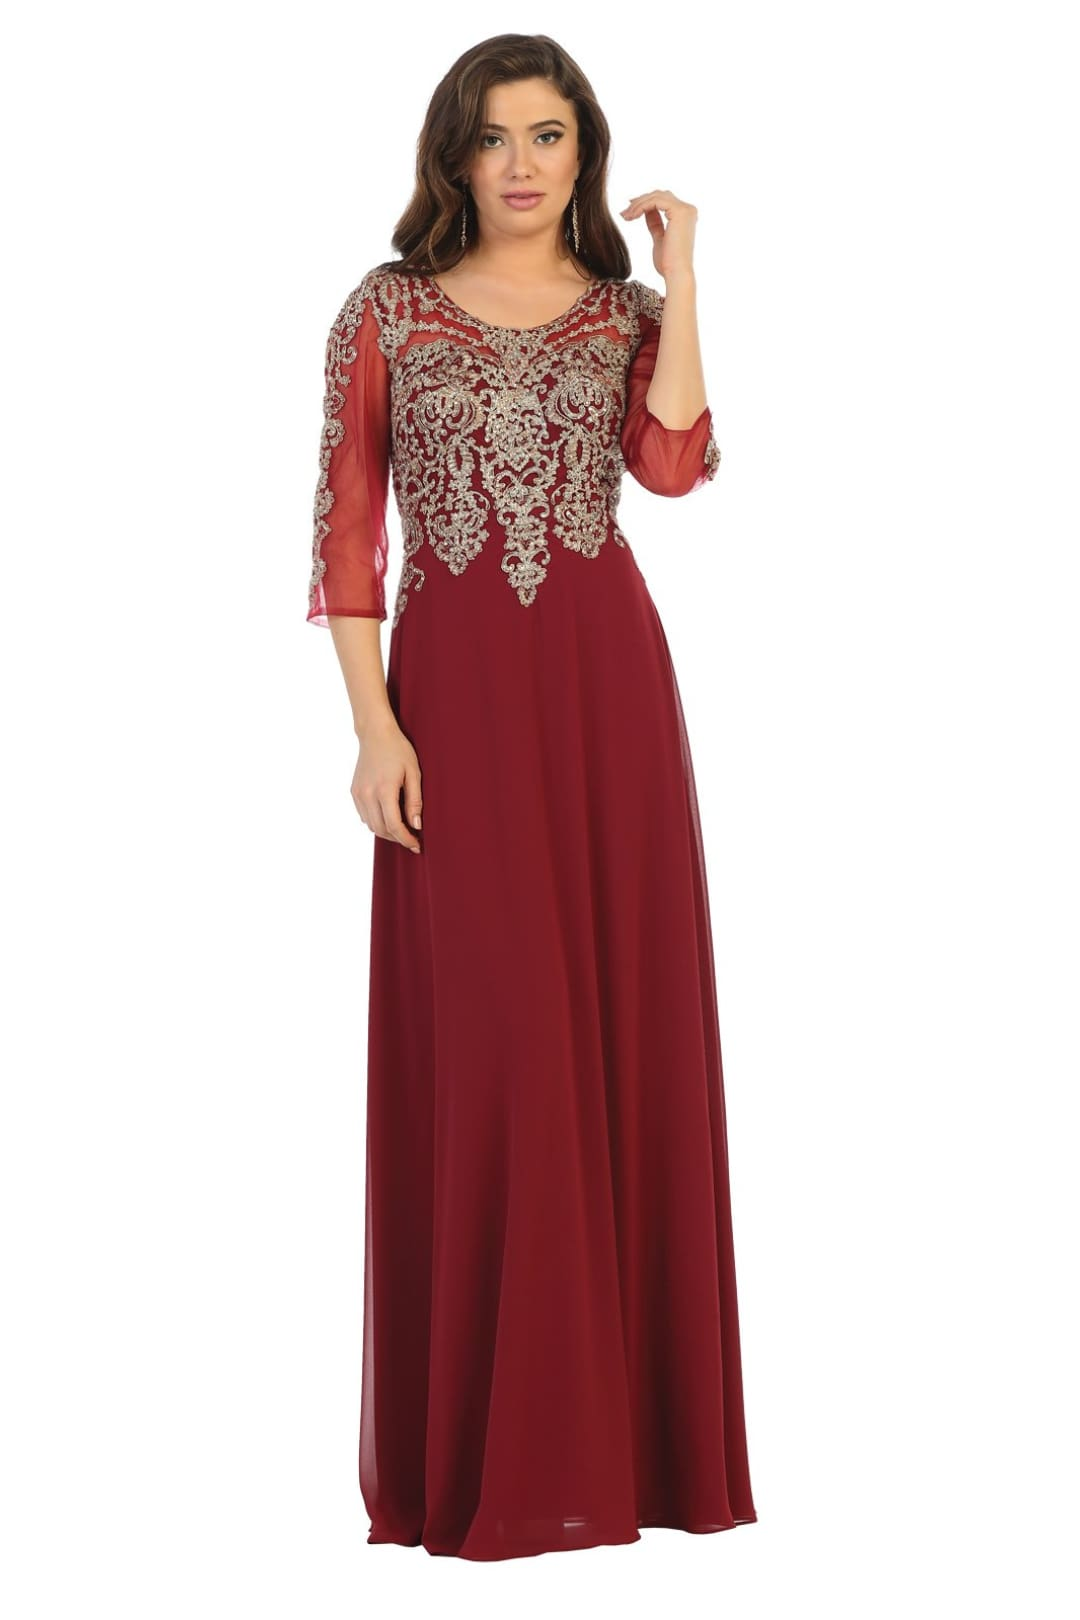 Mother Of The Bride Lace Gown - Burgundy/Gold / M